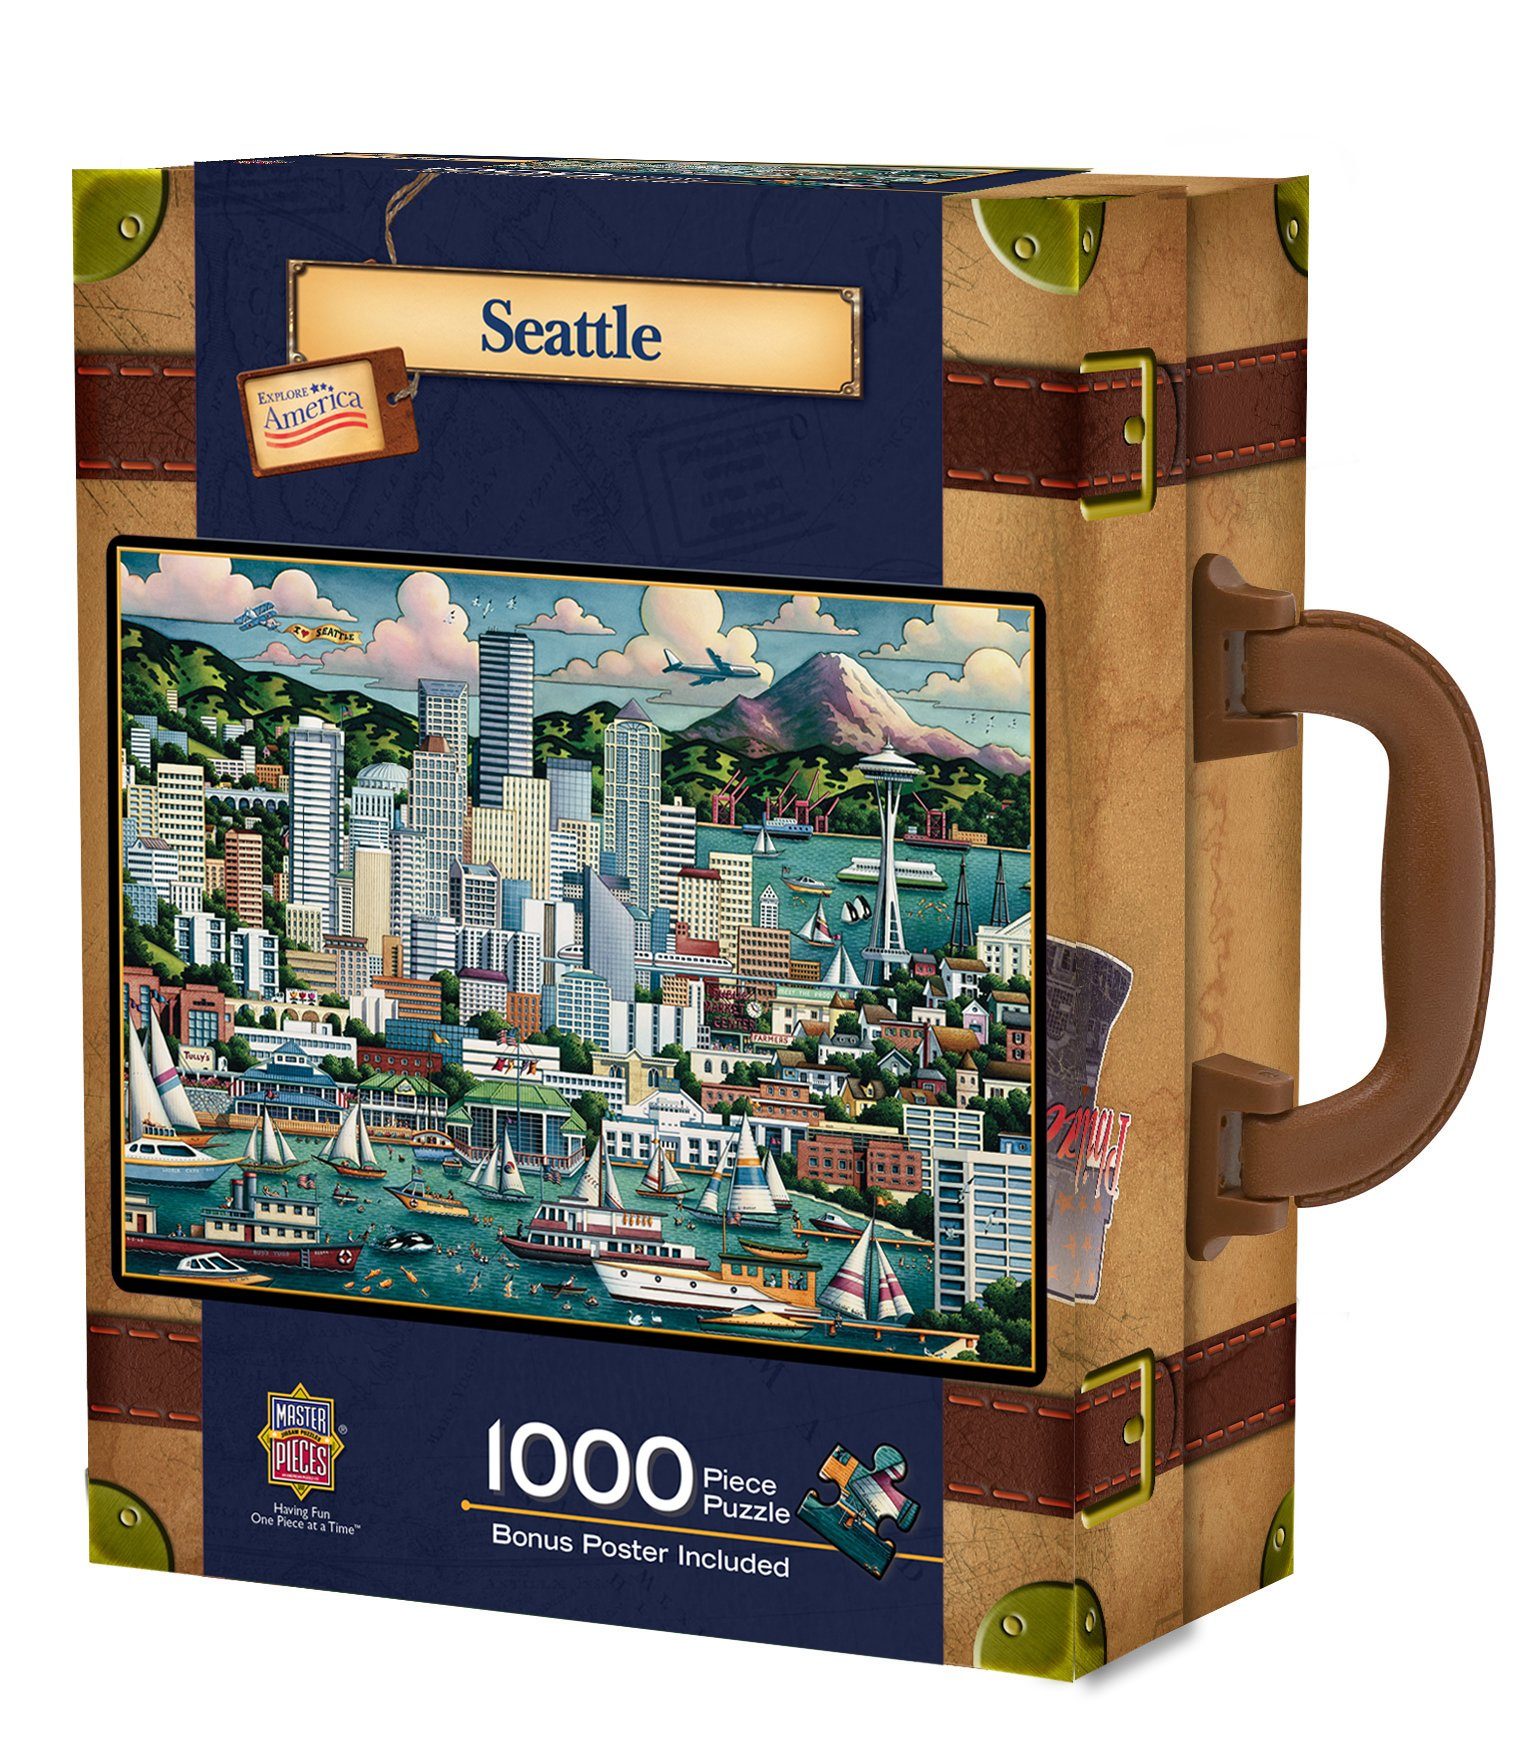 MasterPieces Travel Suitcases Seattle Jigsaw Puzzle, Art by Eric Dowdle, 1000-Piece